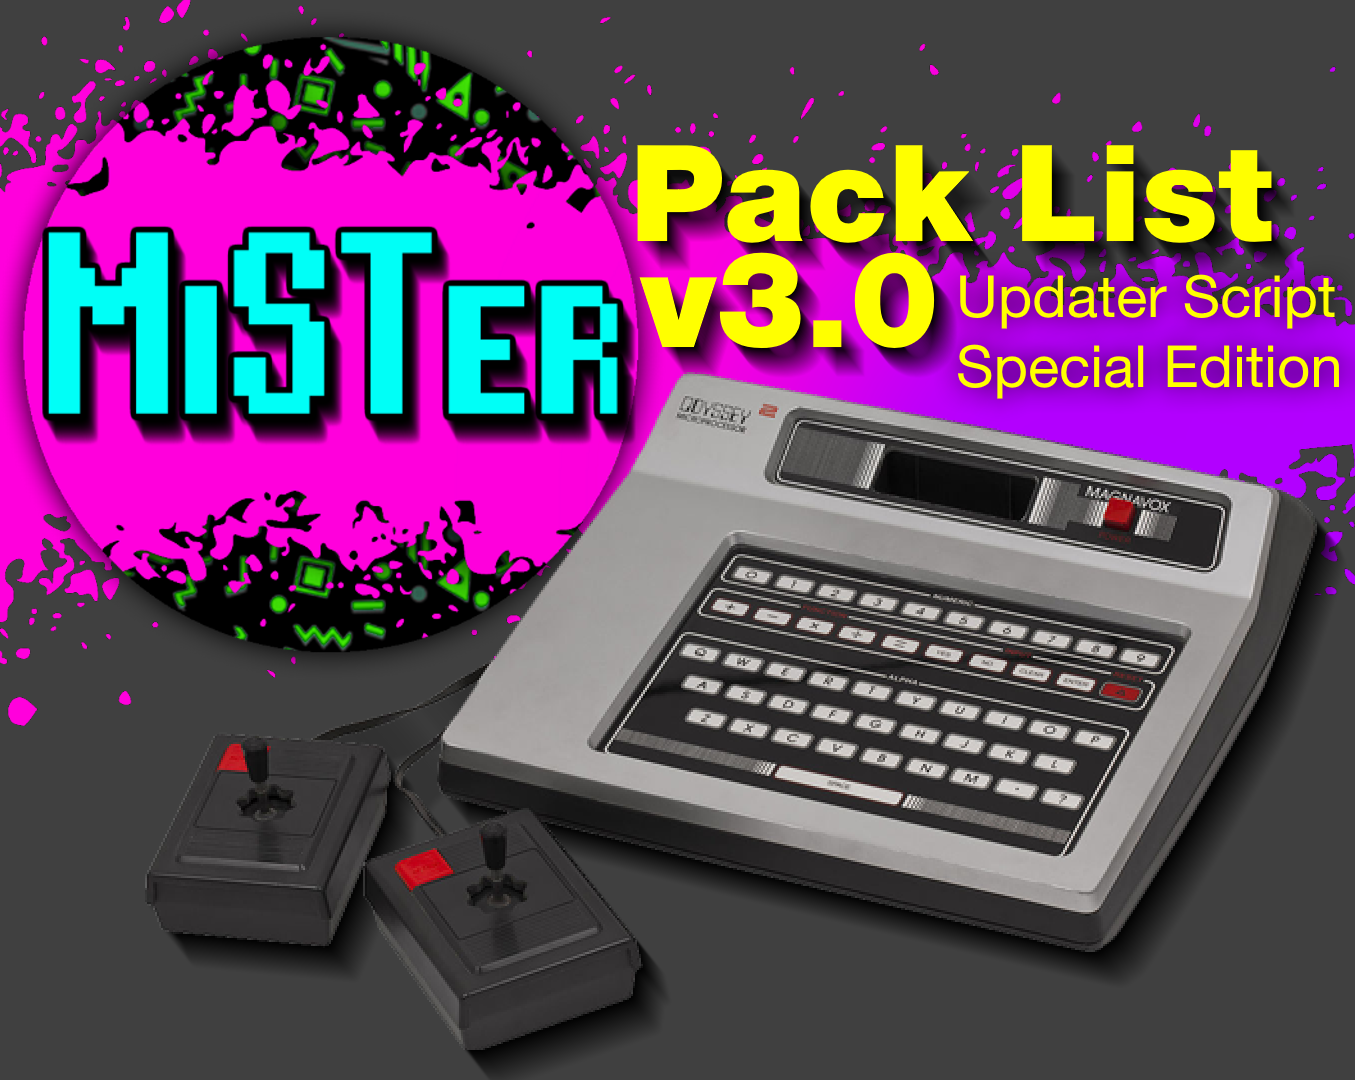 MiSTer Pack List v3.0 Released – Updater Script Special Edition